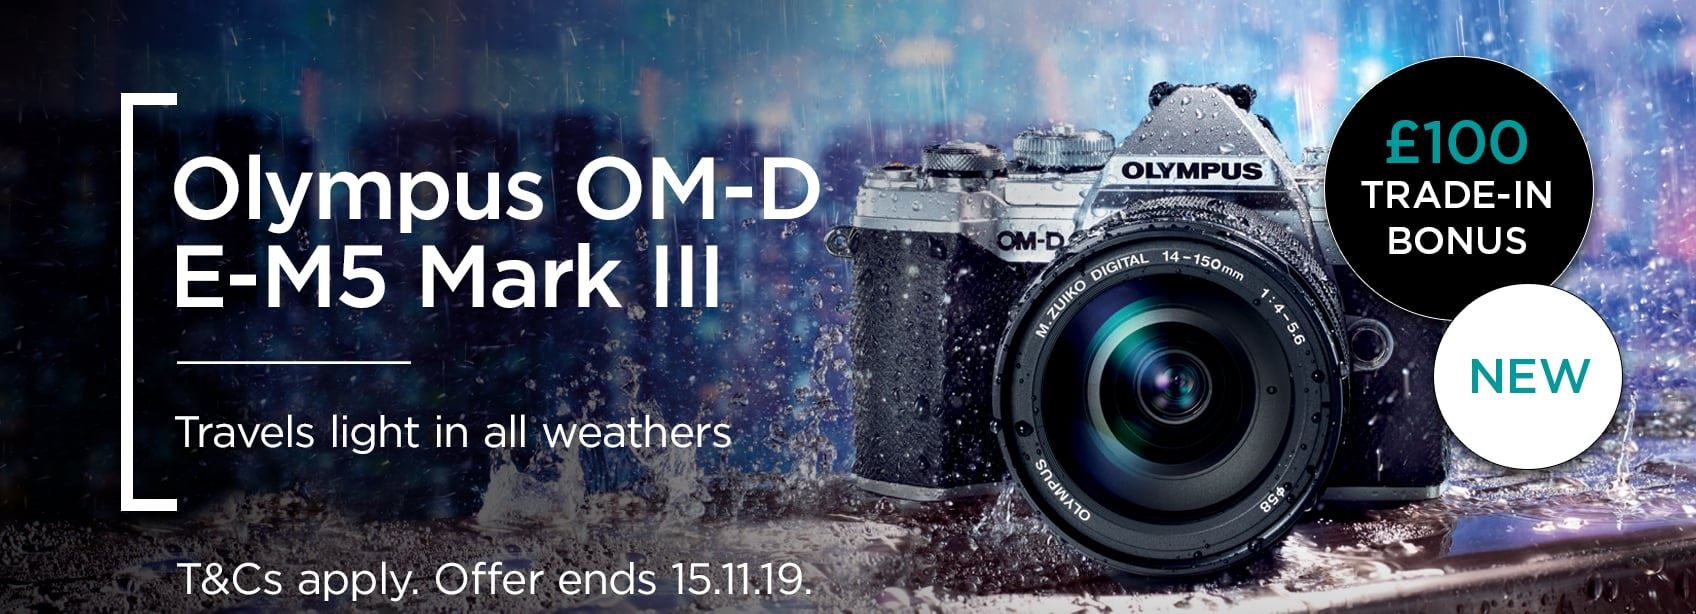 Olympus OM-D E-M5 Mark III - Just launched